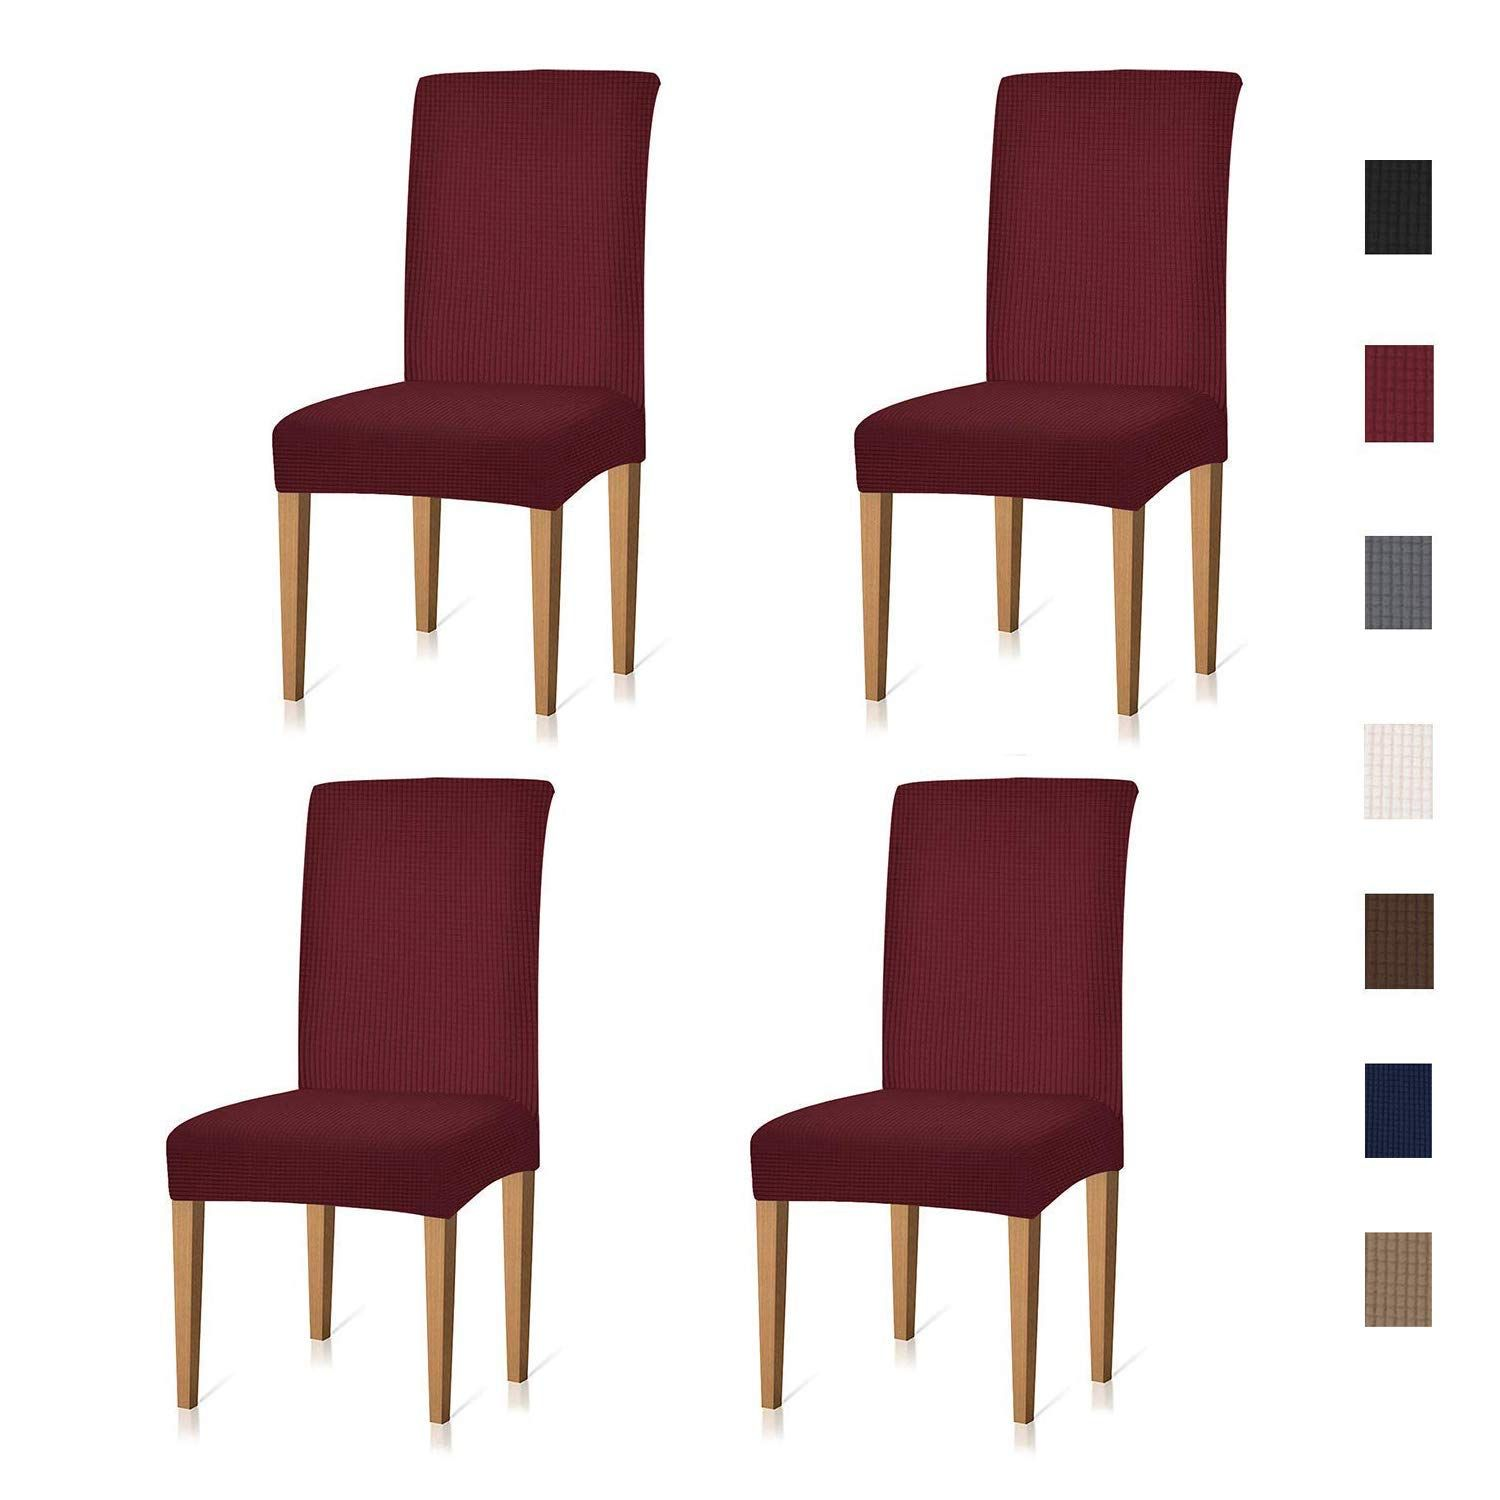 Xflyee Stretch Dining Room Chair Covers Jacquard Removable